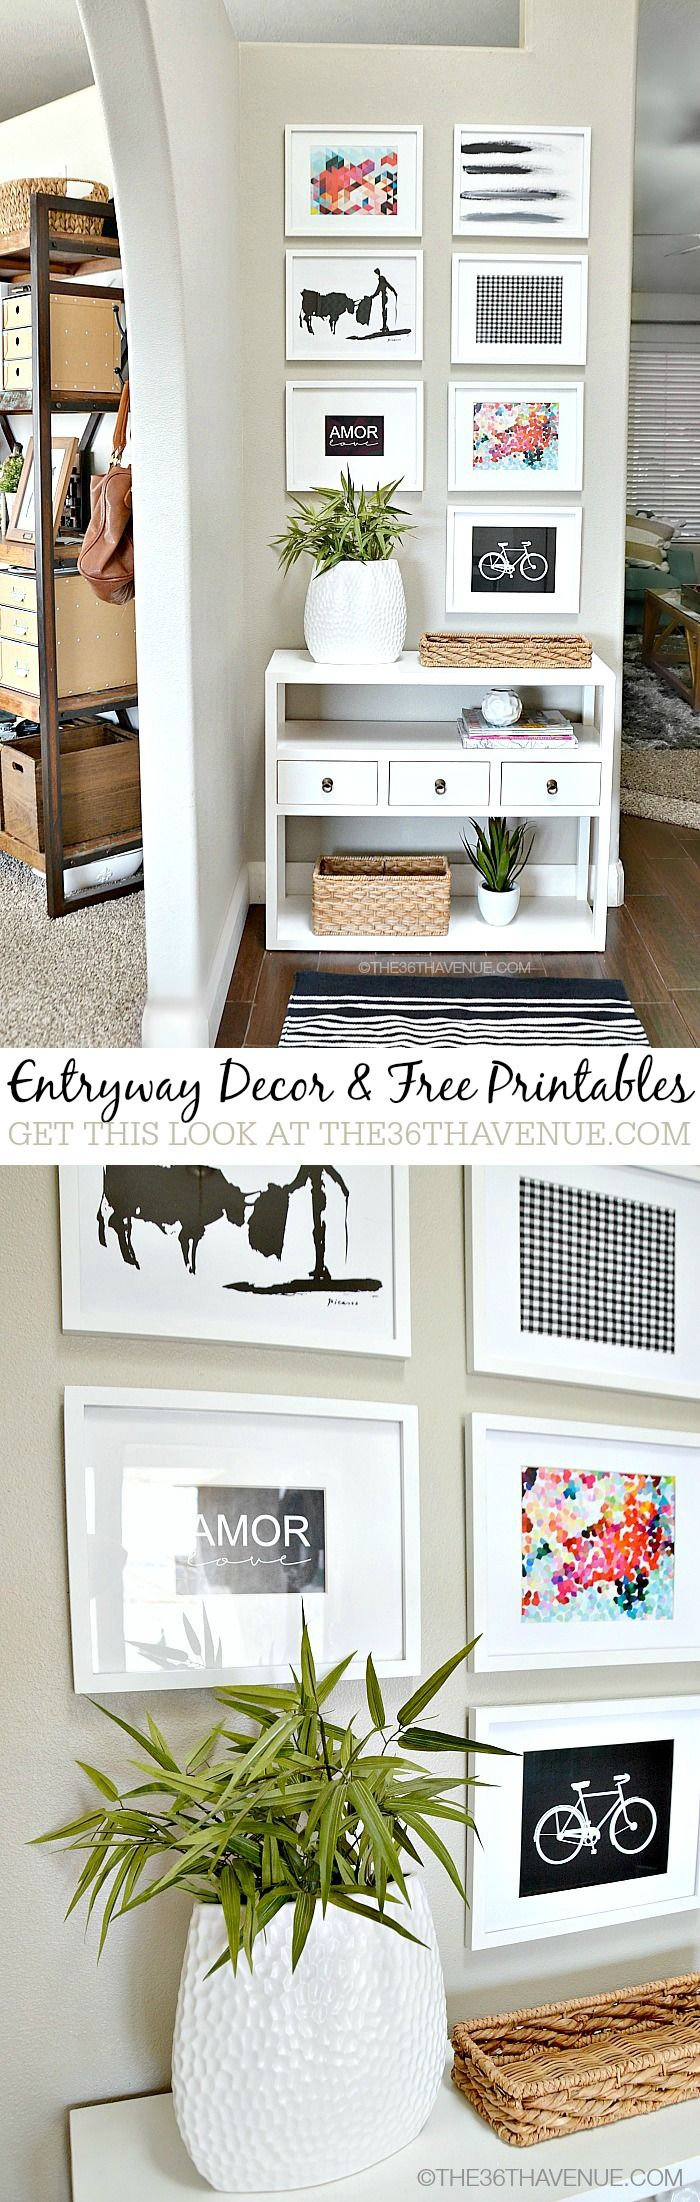 home decor entryway decor and free gall art printables at the36thavenuecom homedecor